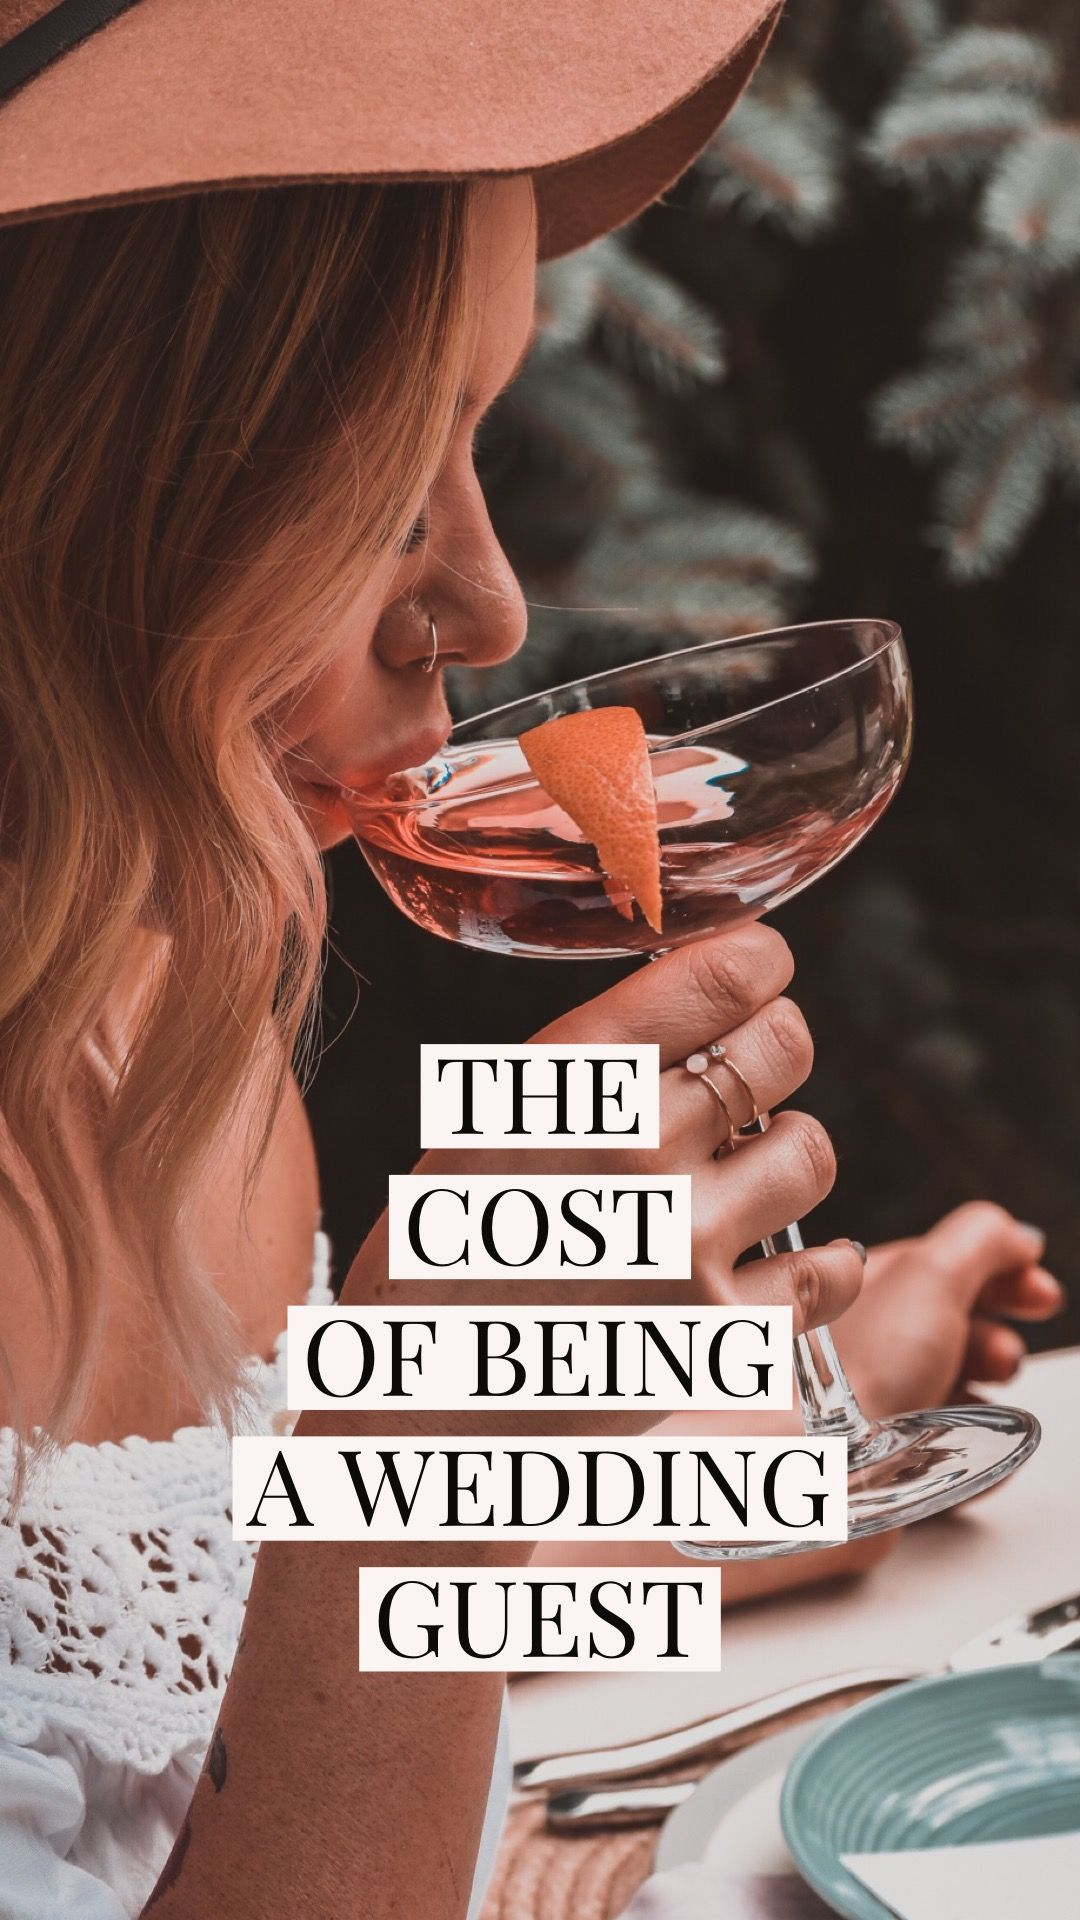 The cost of being a wedding guest isn't pretty. But with careful planning and some budget saving tips, you can survive and keep your bank account thriving this wedding season. #weddingplanning #weddingguest #weddingday #bride #bridaltips